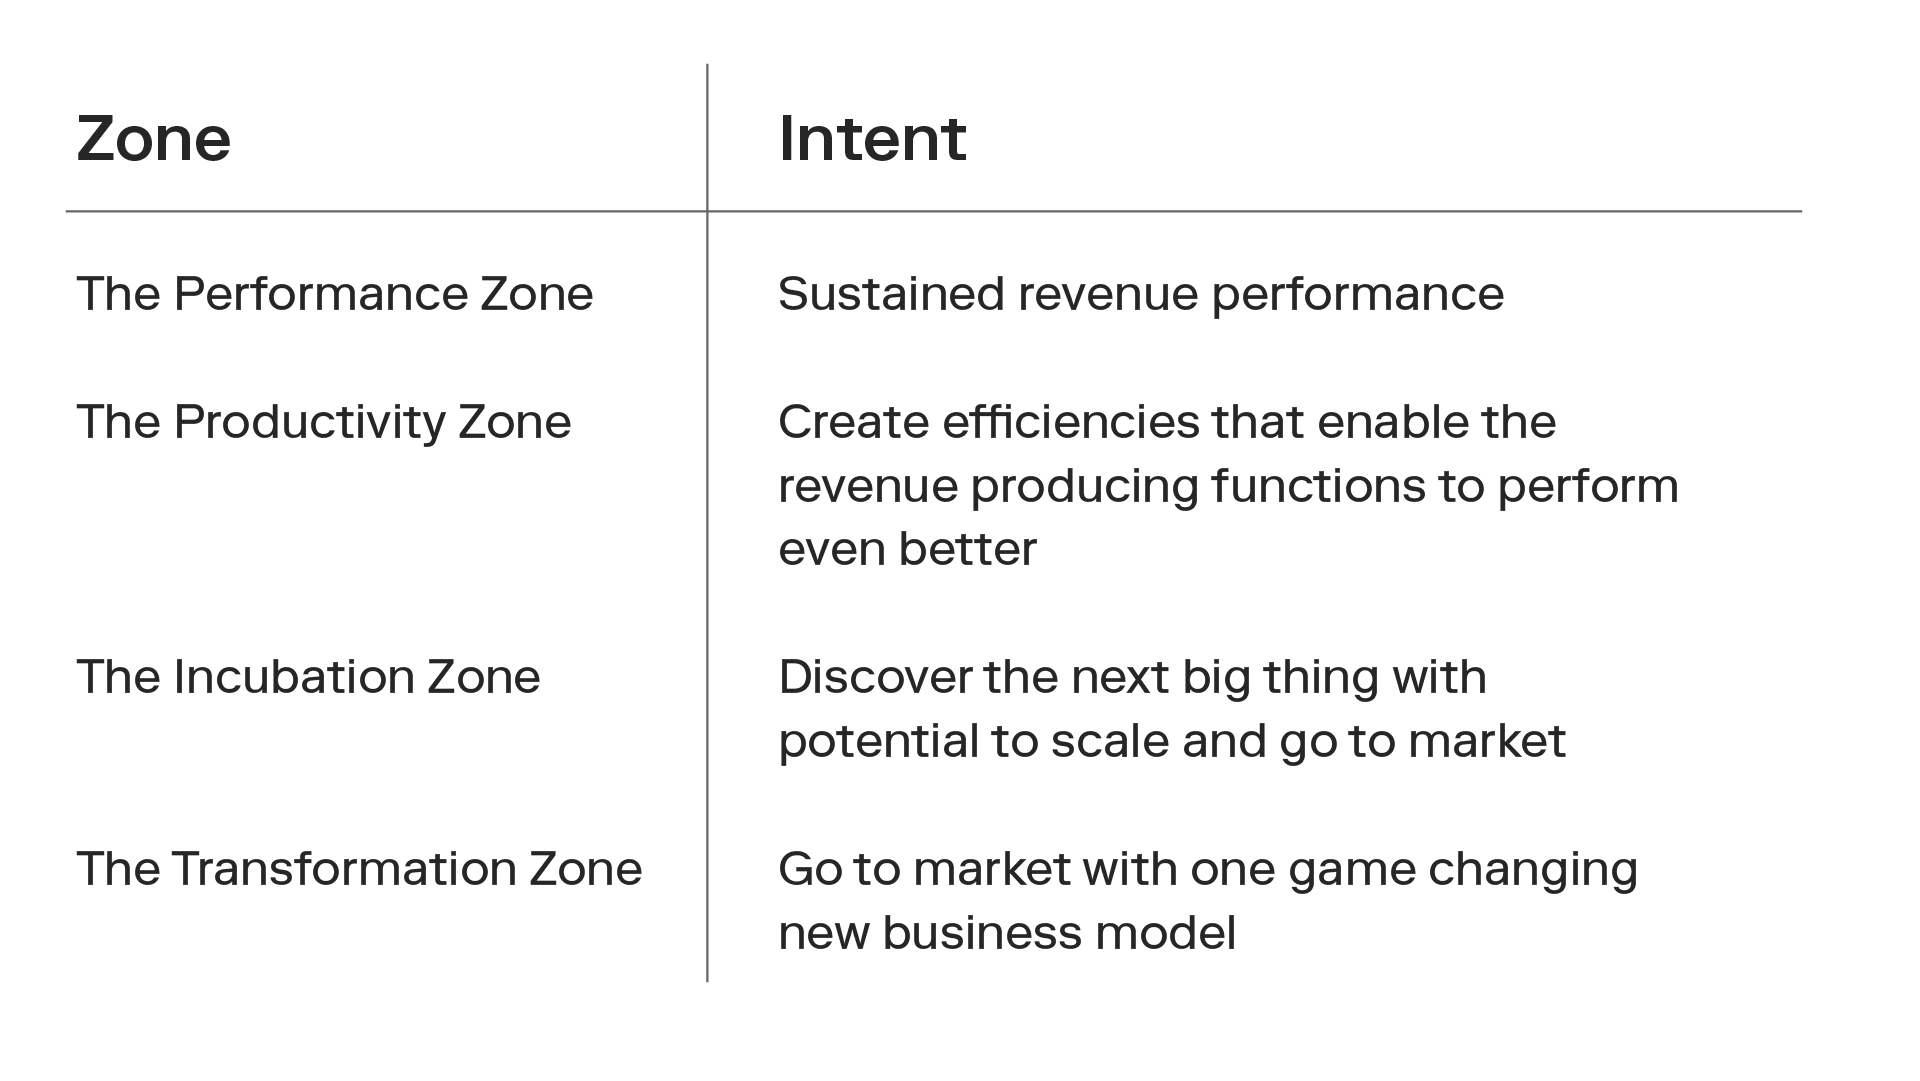 The four zones and their intents